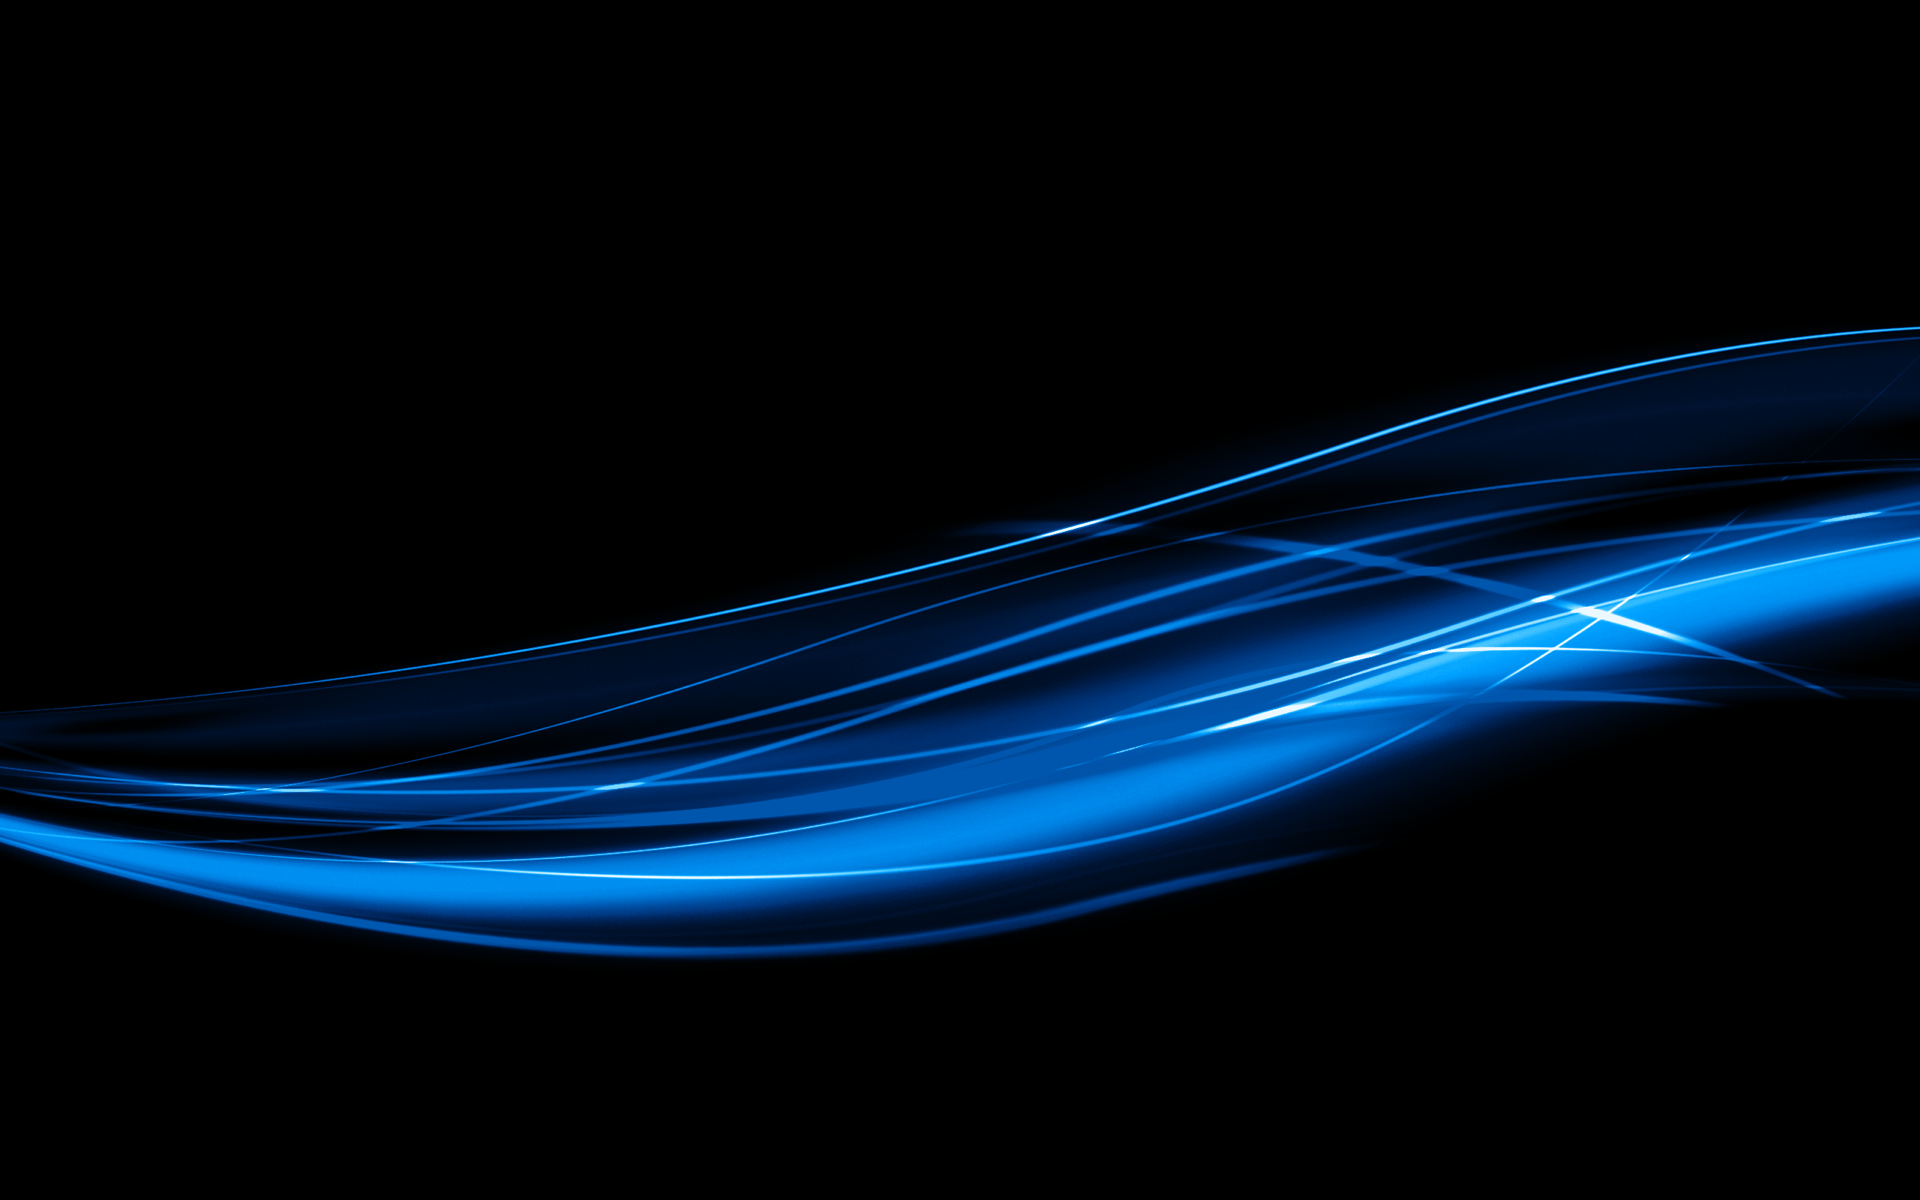 Abstract Blue Lines Wallpaper